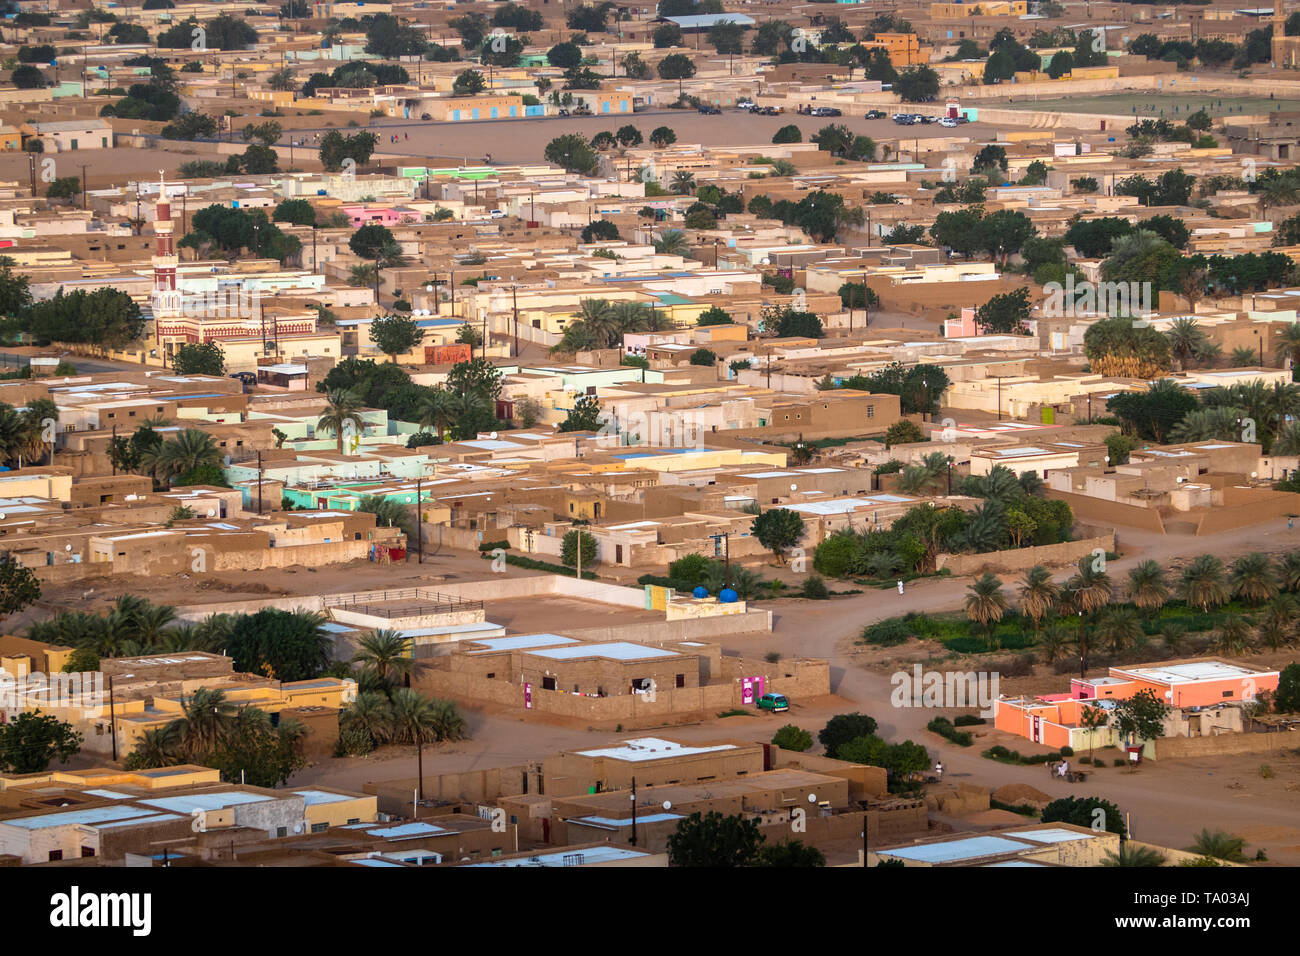 Aerial view of a typical village in Sudan near the Nile, with flat loam buildings and colourful doors, Africa - Stock Image